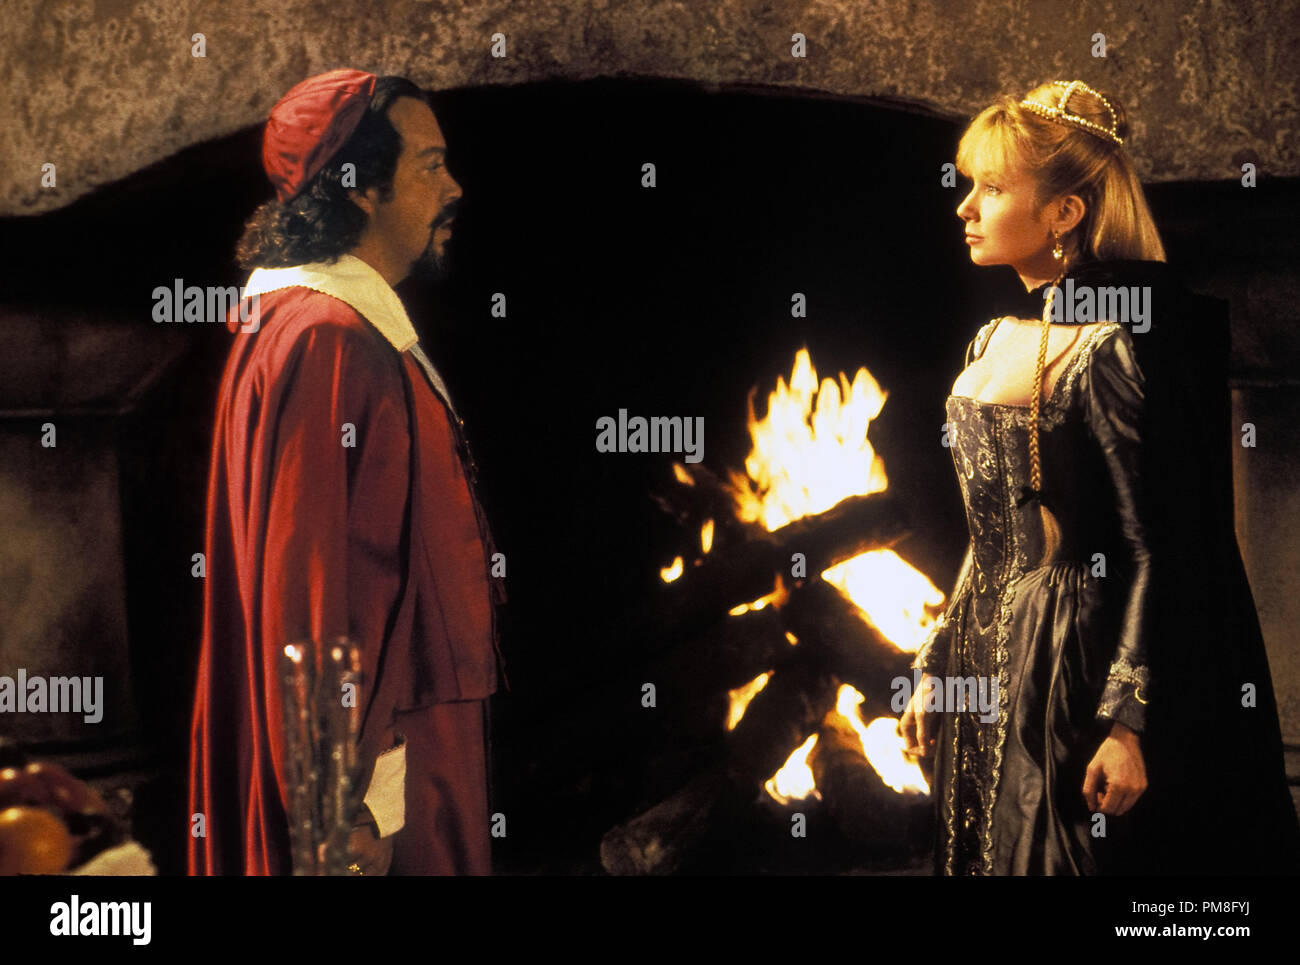 the 3 musketeers movie 1993